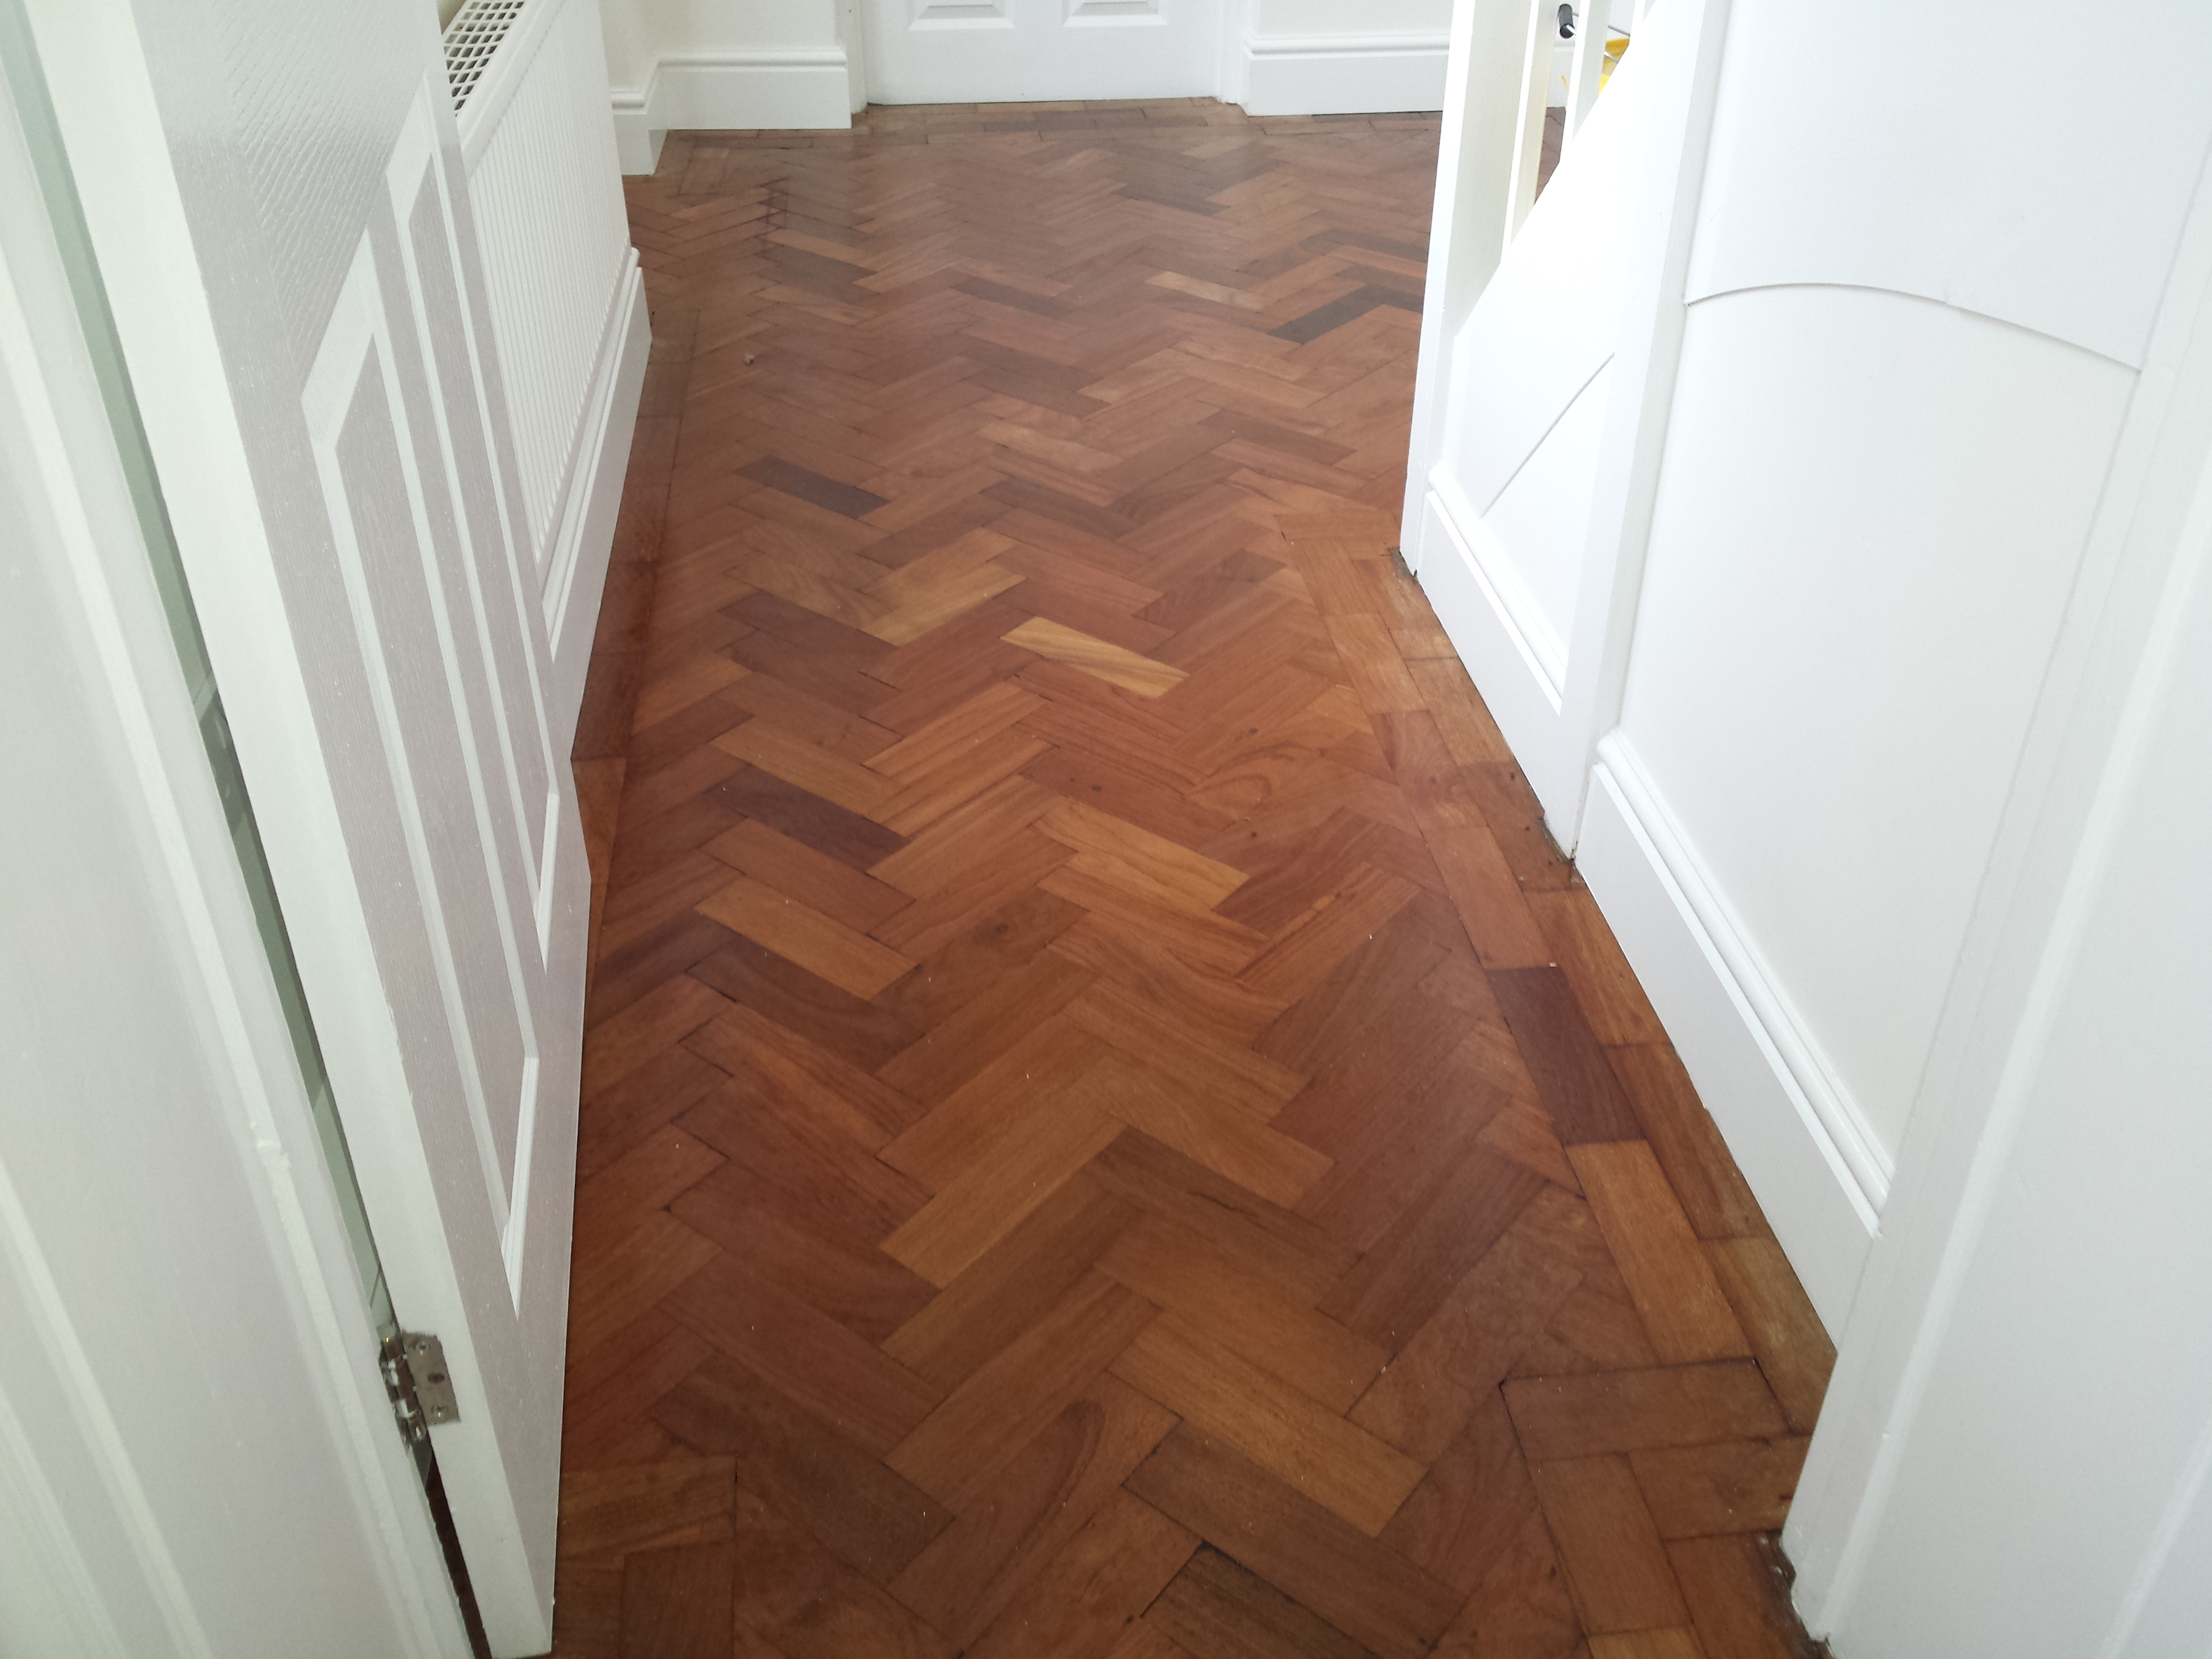 cleaner on how floor clean photos ideas about flooring home best parquet allure all tips laminate to